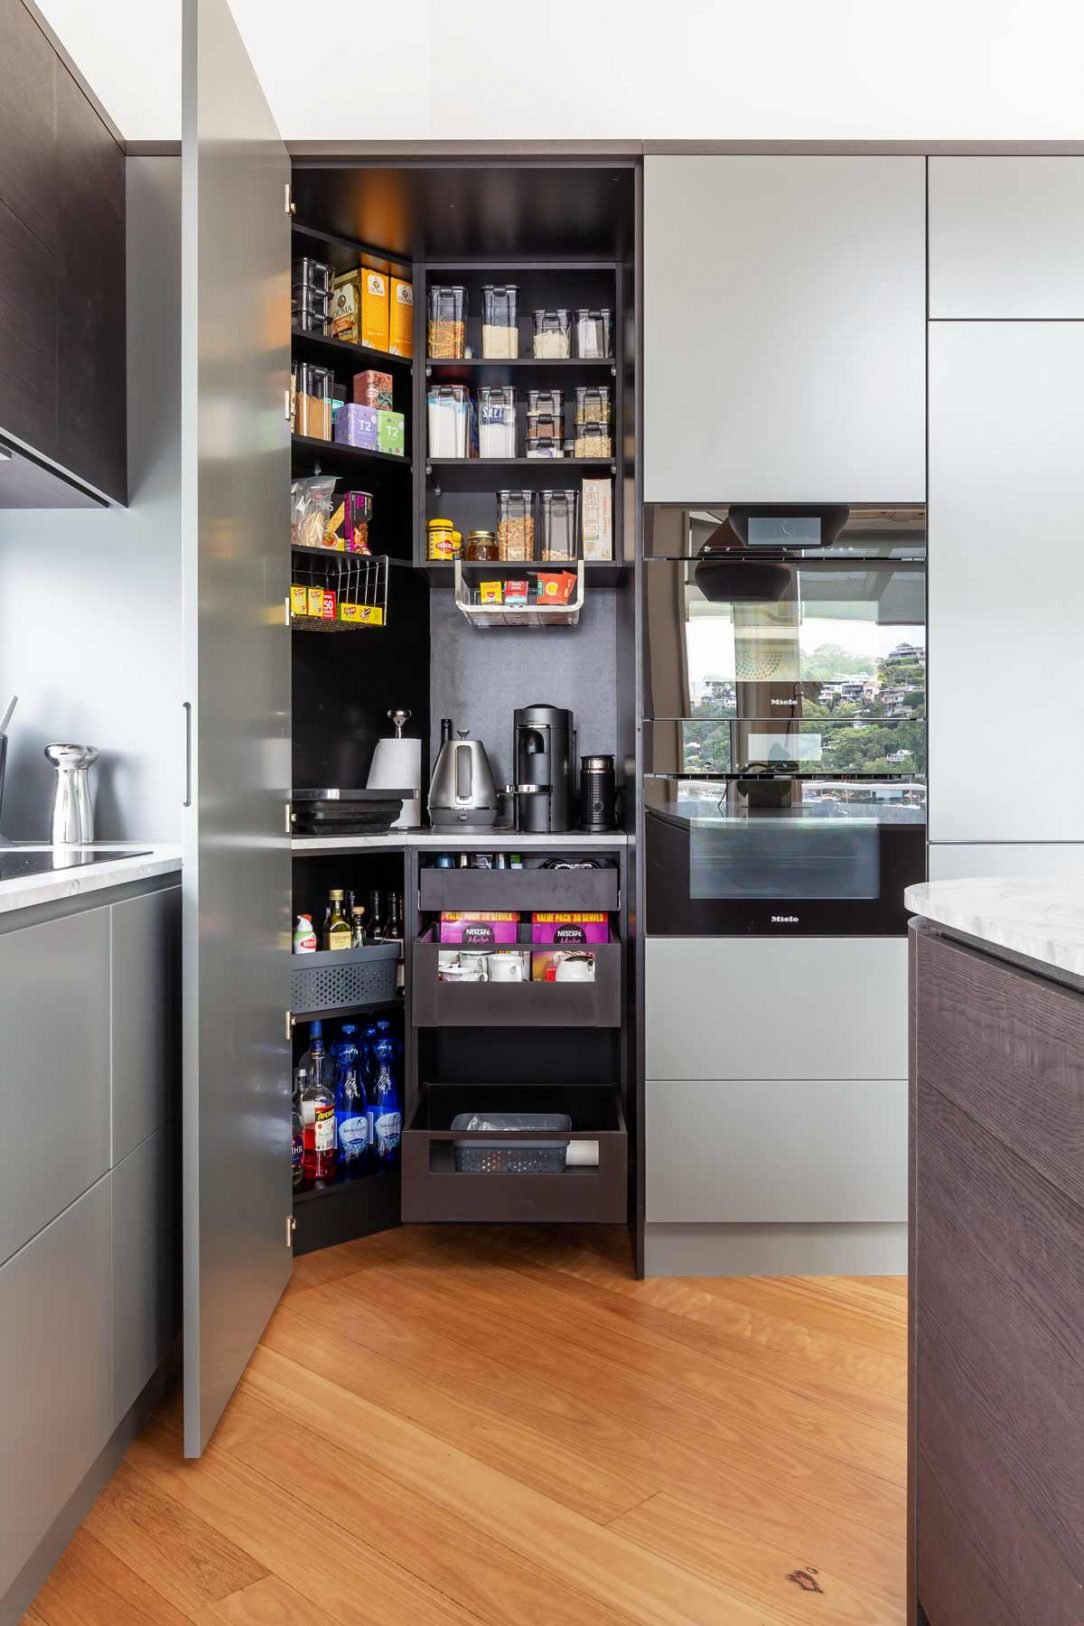 modern luxury kitchen design in Seaforth, Sydney featuring Miele appliances, walk-in pantry small appliance cupboard, Blum lift-up overhead cabinets, fully integrated appliances and curved island with stone benchtop. Designed by Premier Kitchens Australia